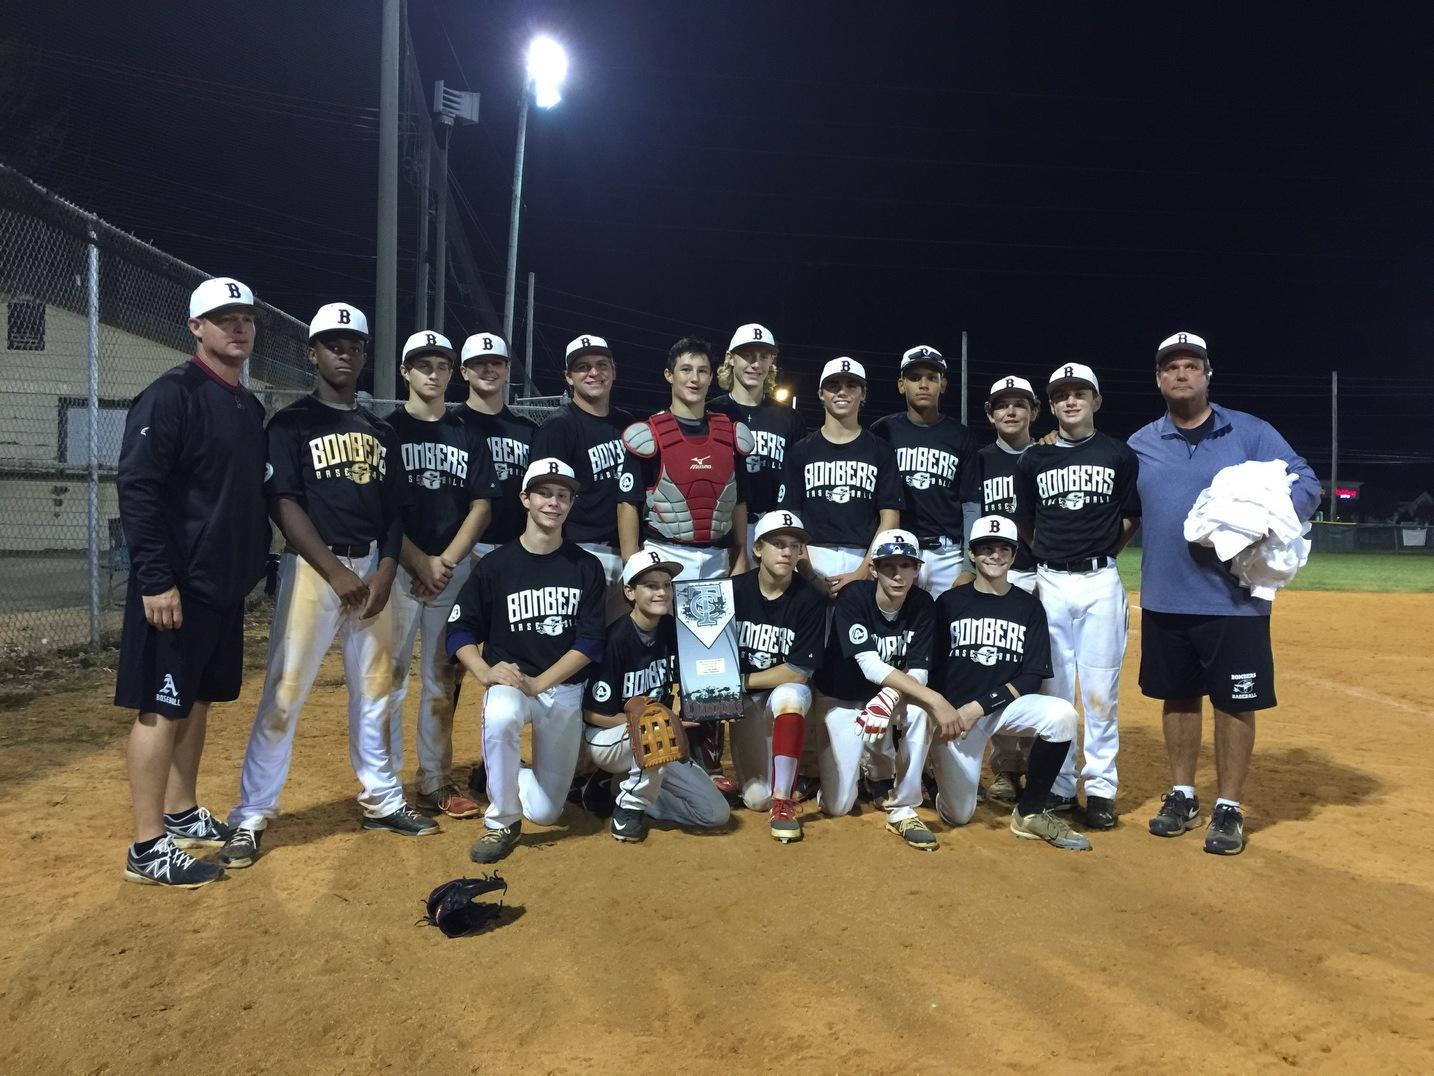 Bombers 14U Program Wins Two Championships On Same Day